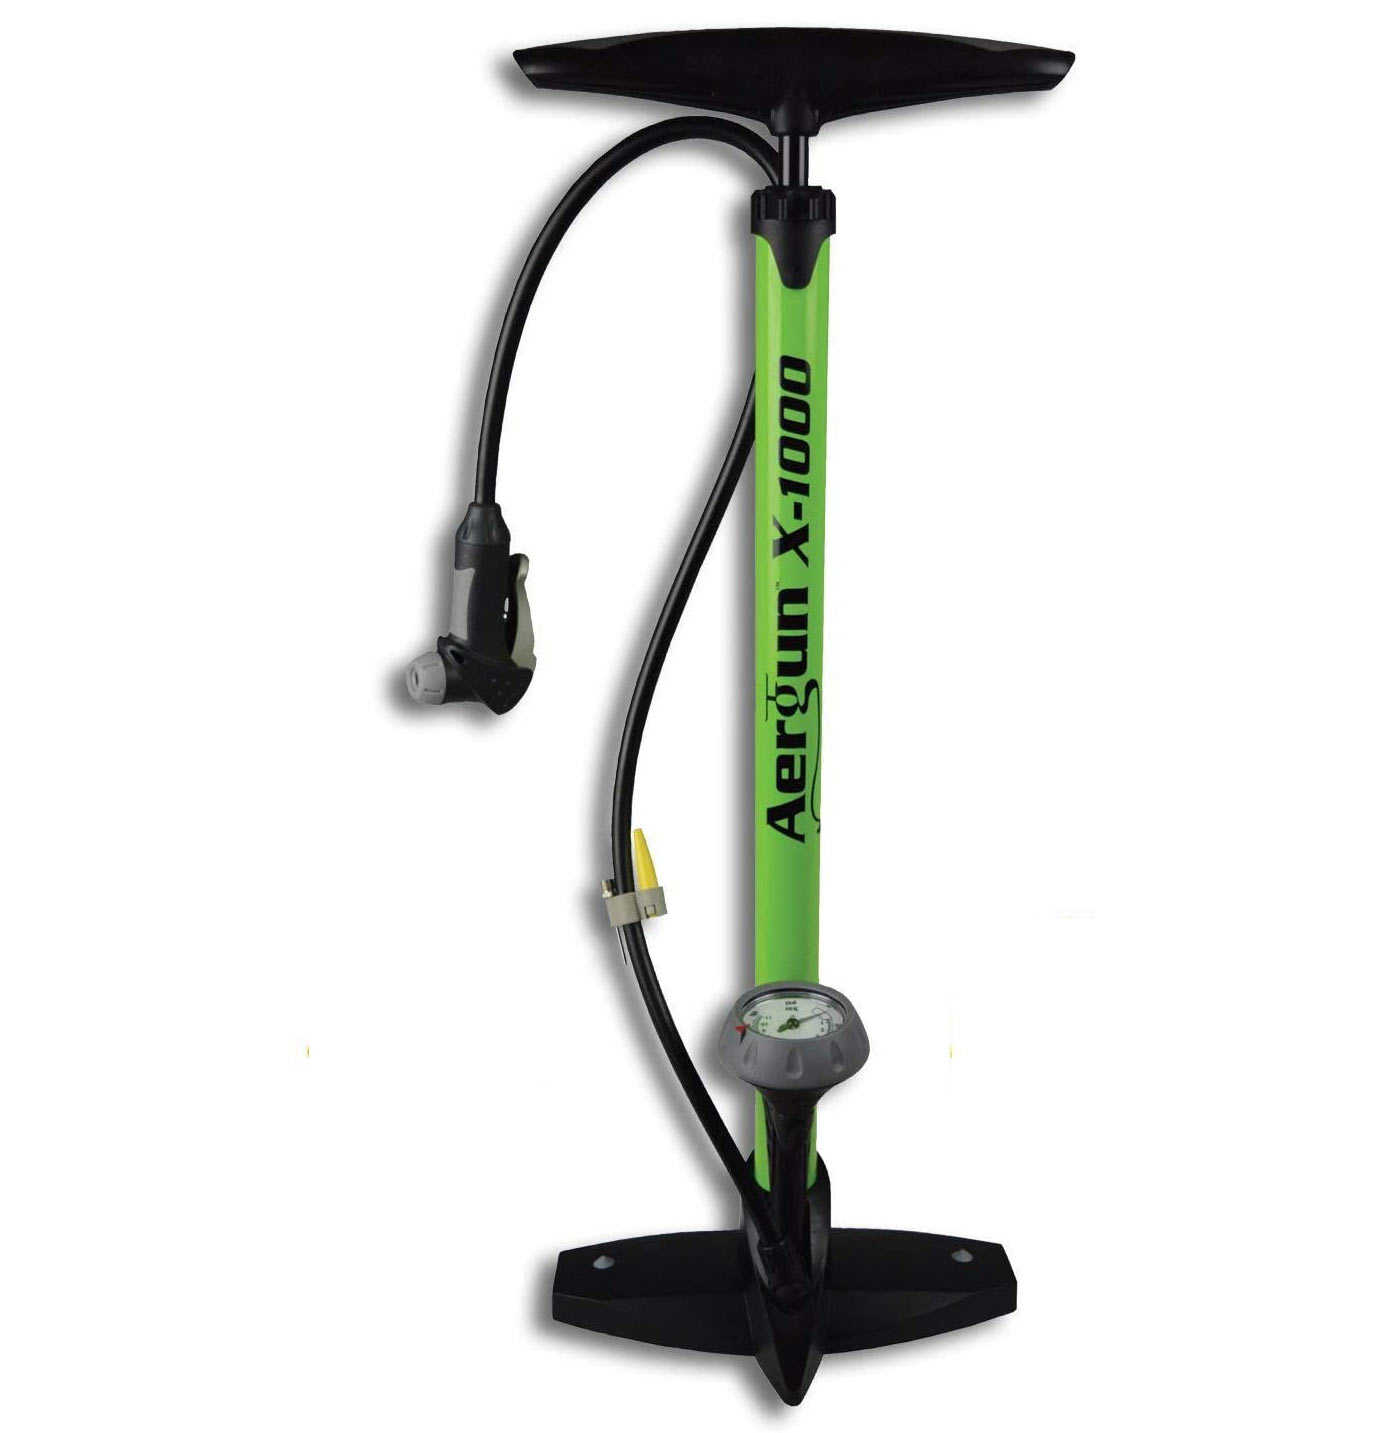 aergun 1000 is one of the top rated bike pumps on amazon